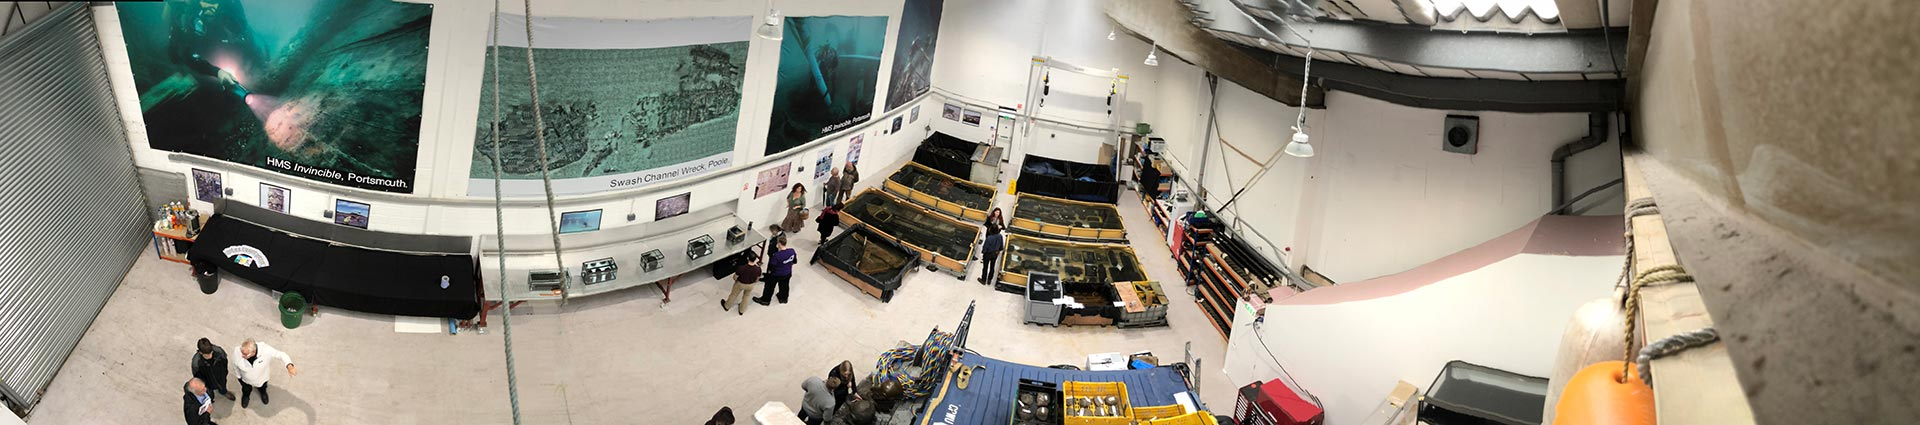 A panoramic shot of the exhibition